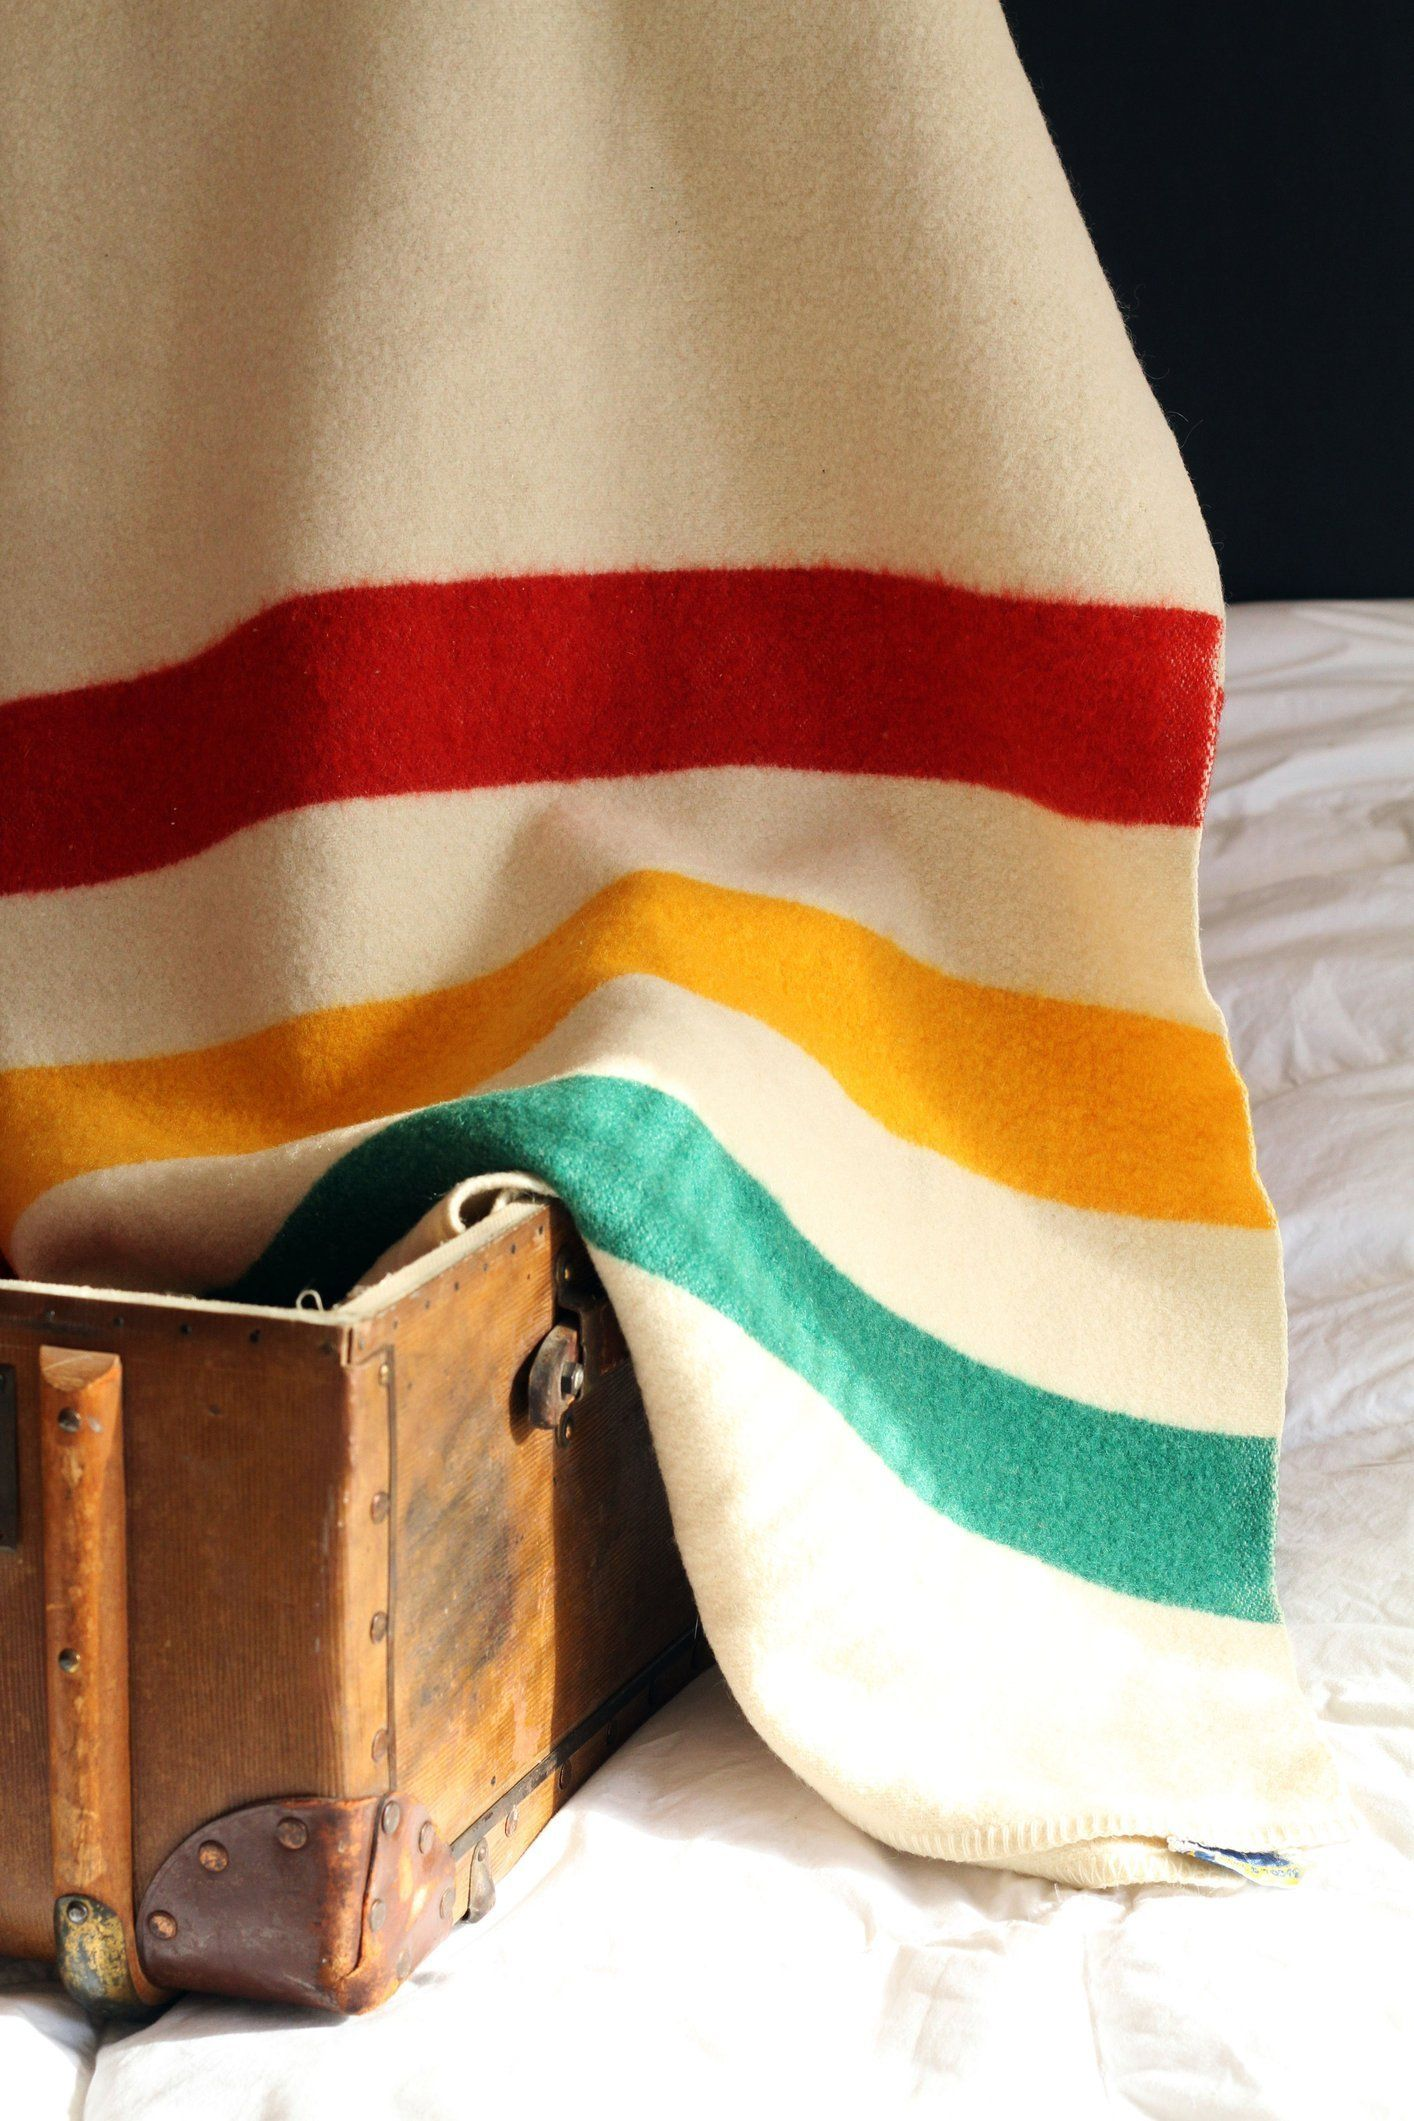 How To Clean A Wool Blanket With Snow Housekeeping